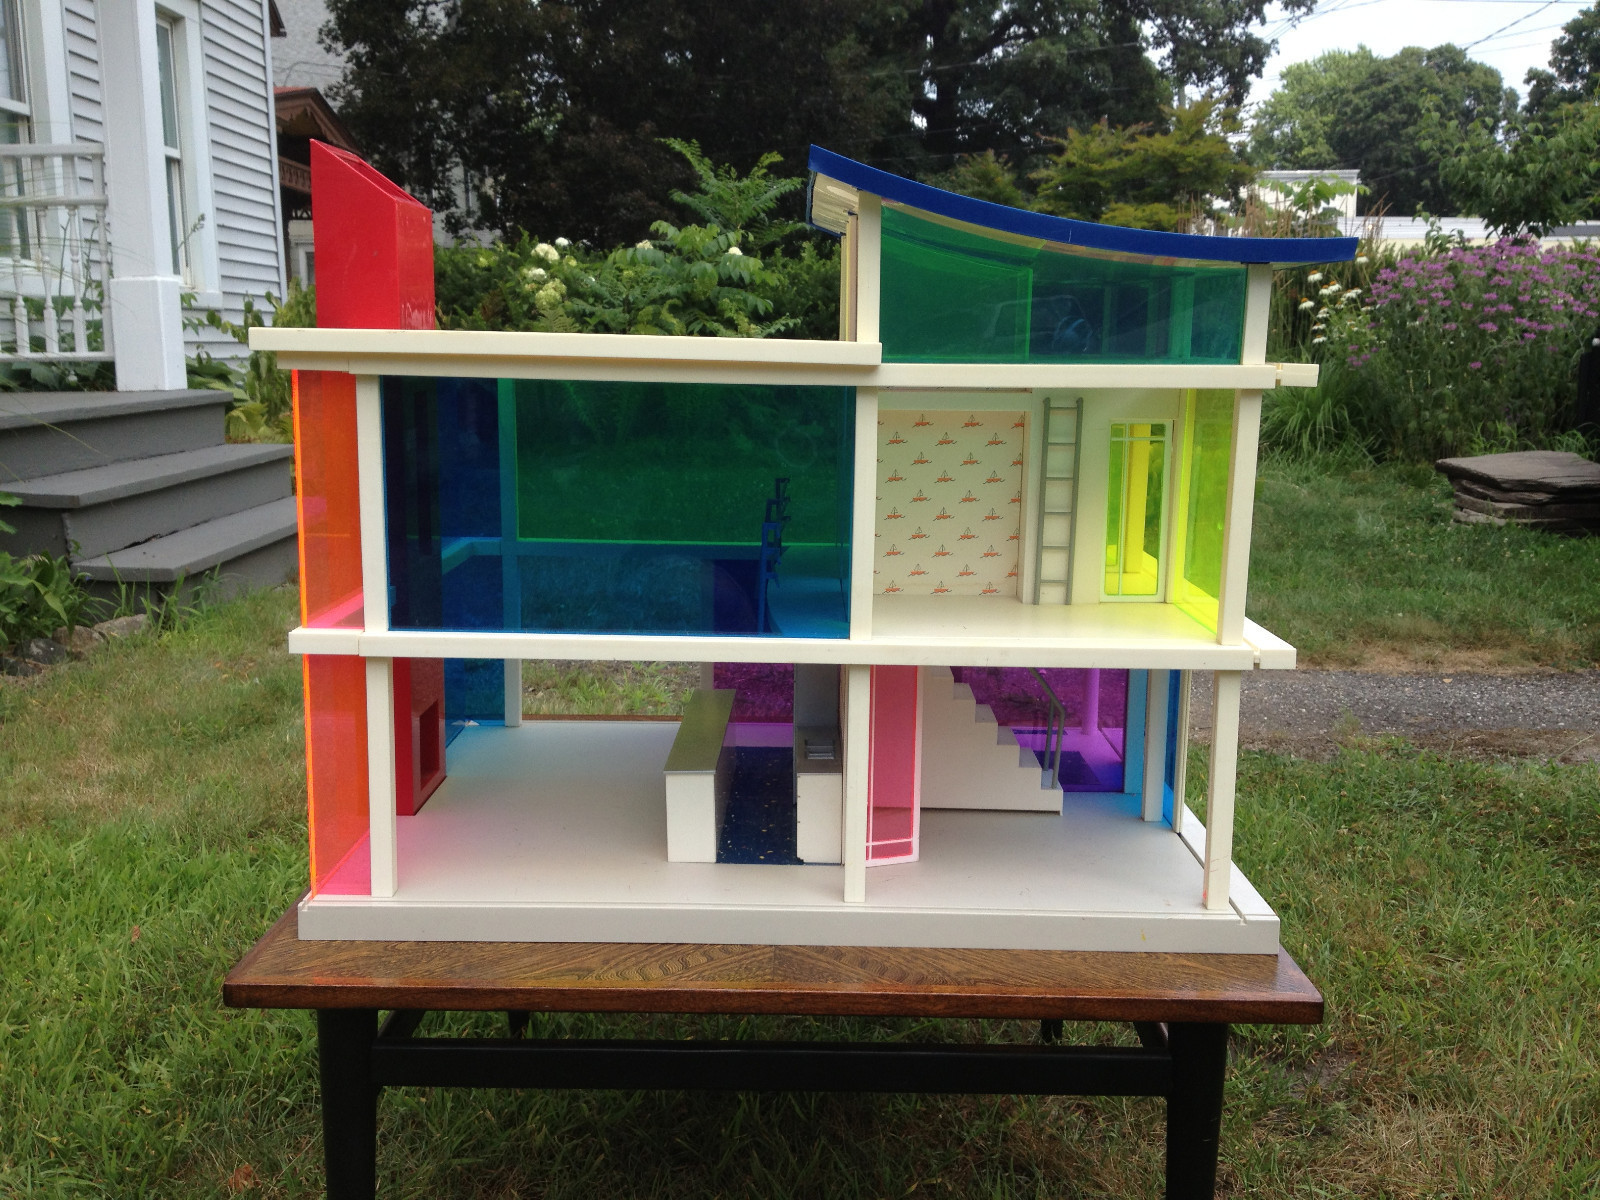 Swish Sale Cape Town Doll Houses Sale Out Re Doll Houses Bozart Three Kaleidoscope Dollhouses Sale Toys R Us curbed Doll Houses For Sale